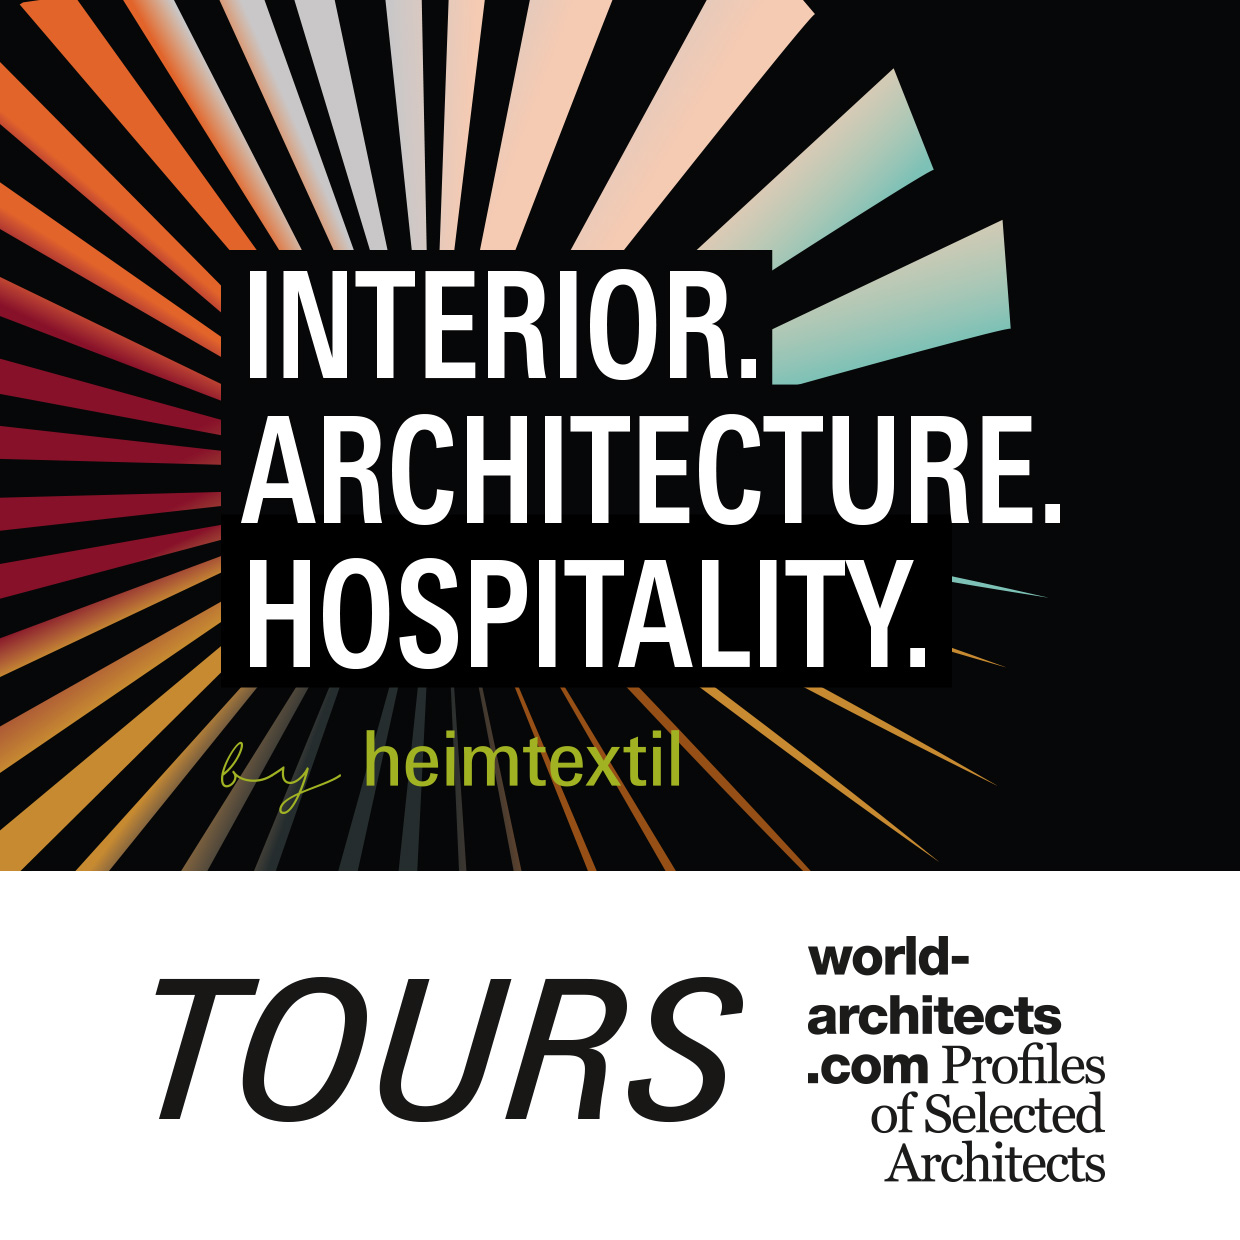 guided-tour-by-world-architects9